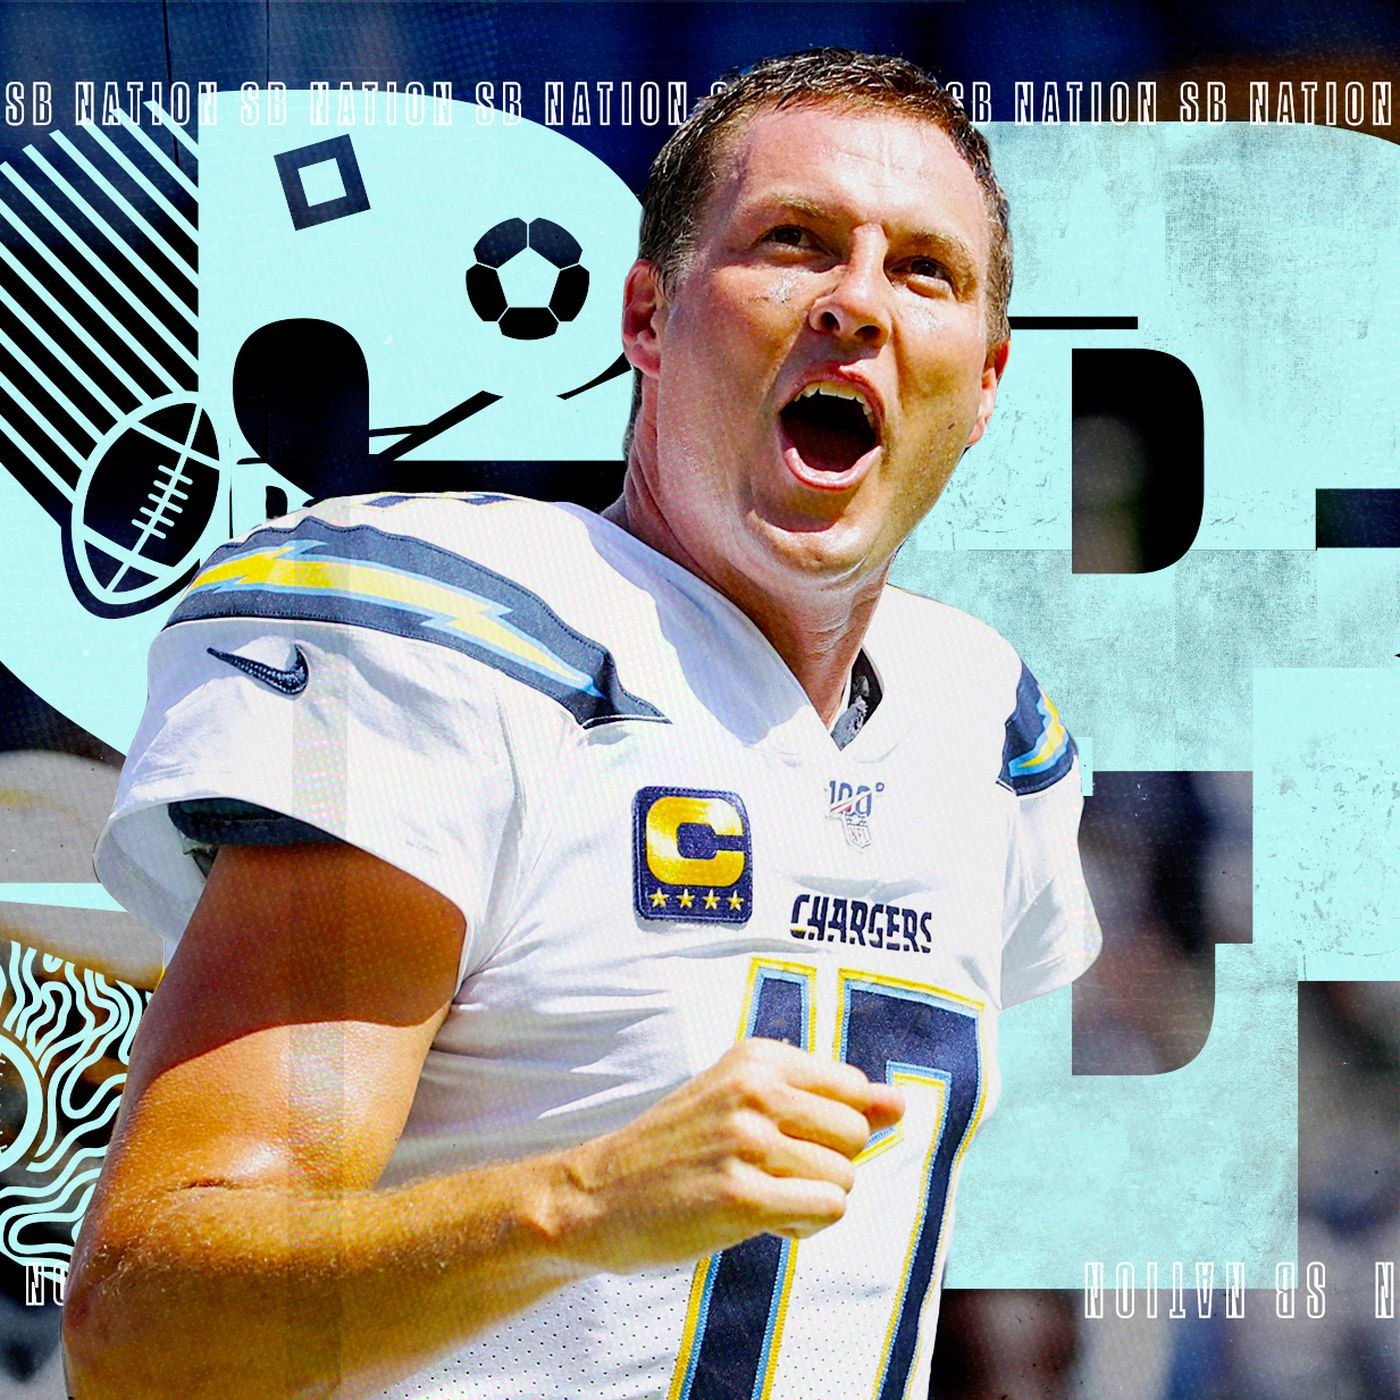 Philip Rivers Could Be The Colts Savior Or He Might Set Them Back At Qb Sbnation Com